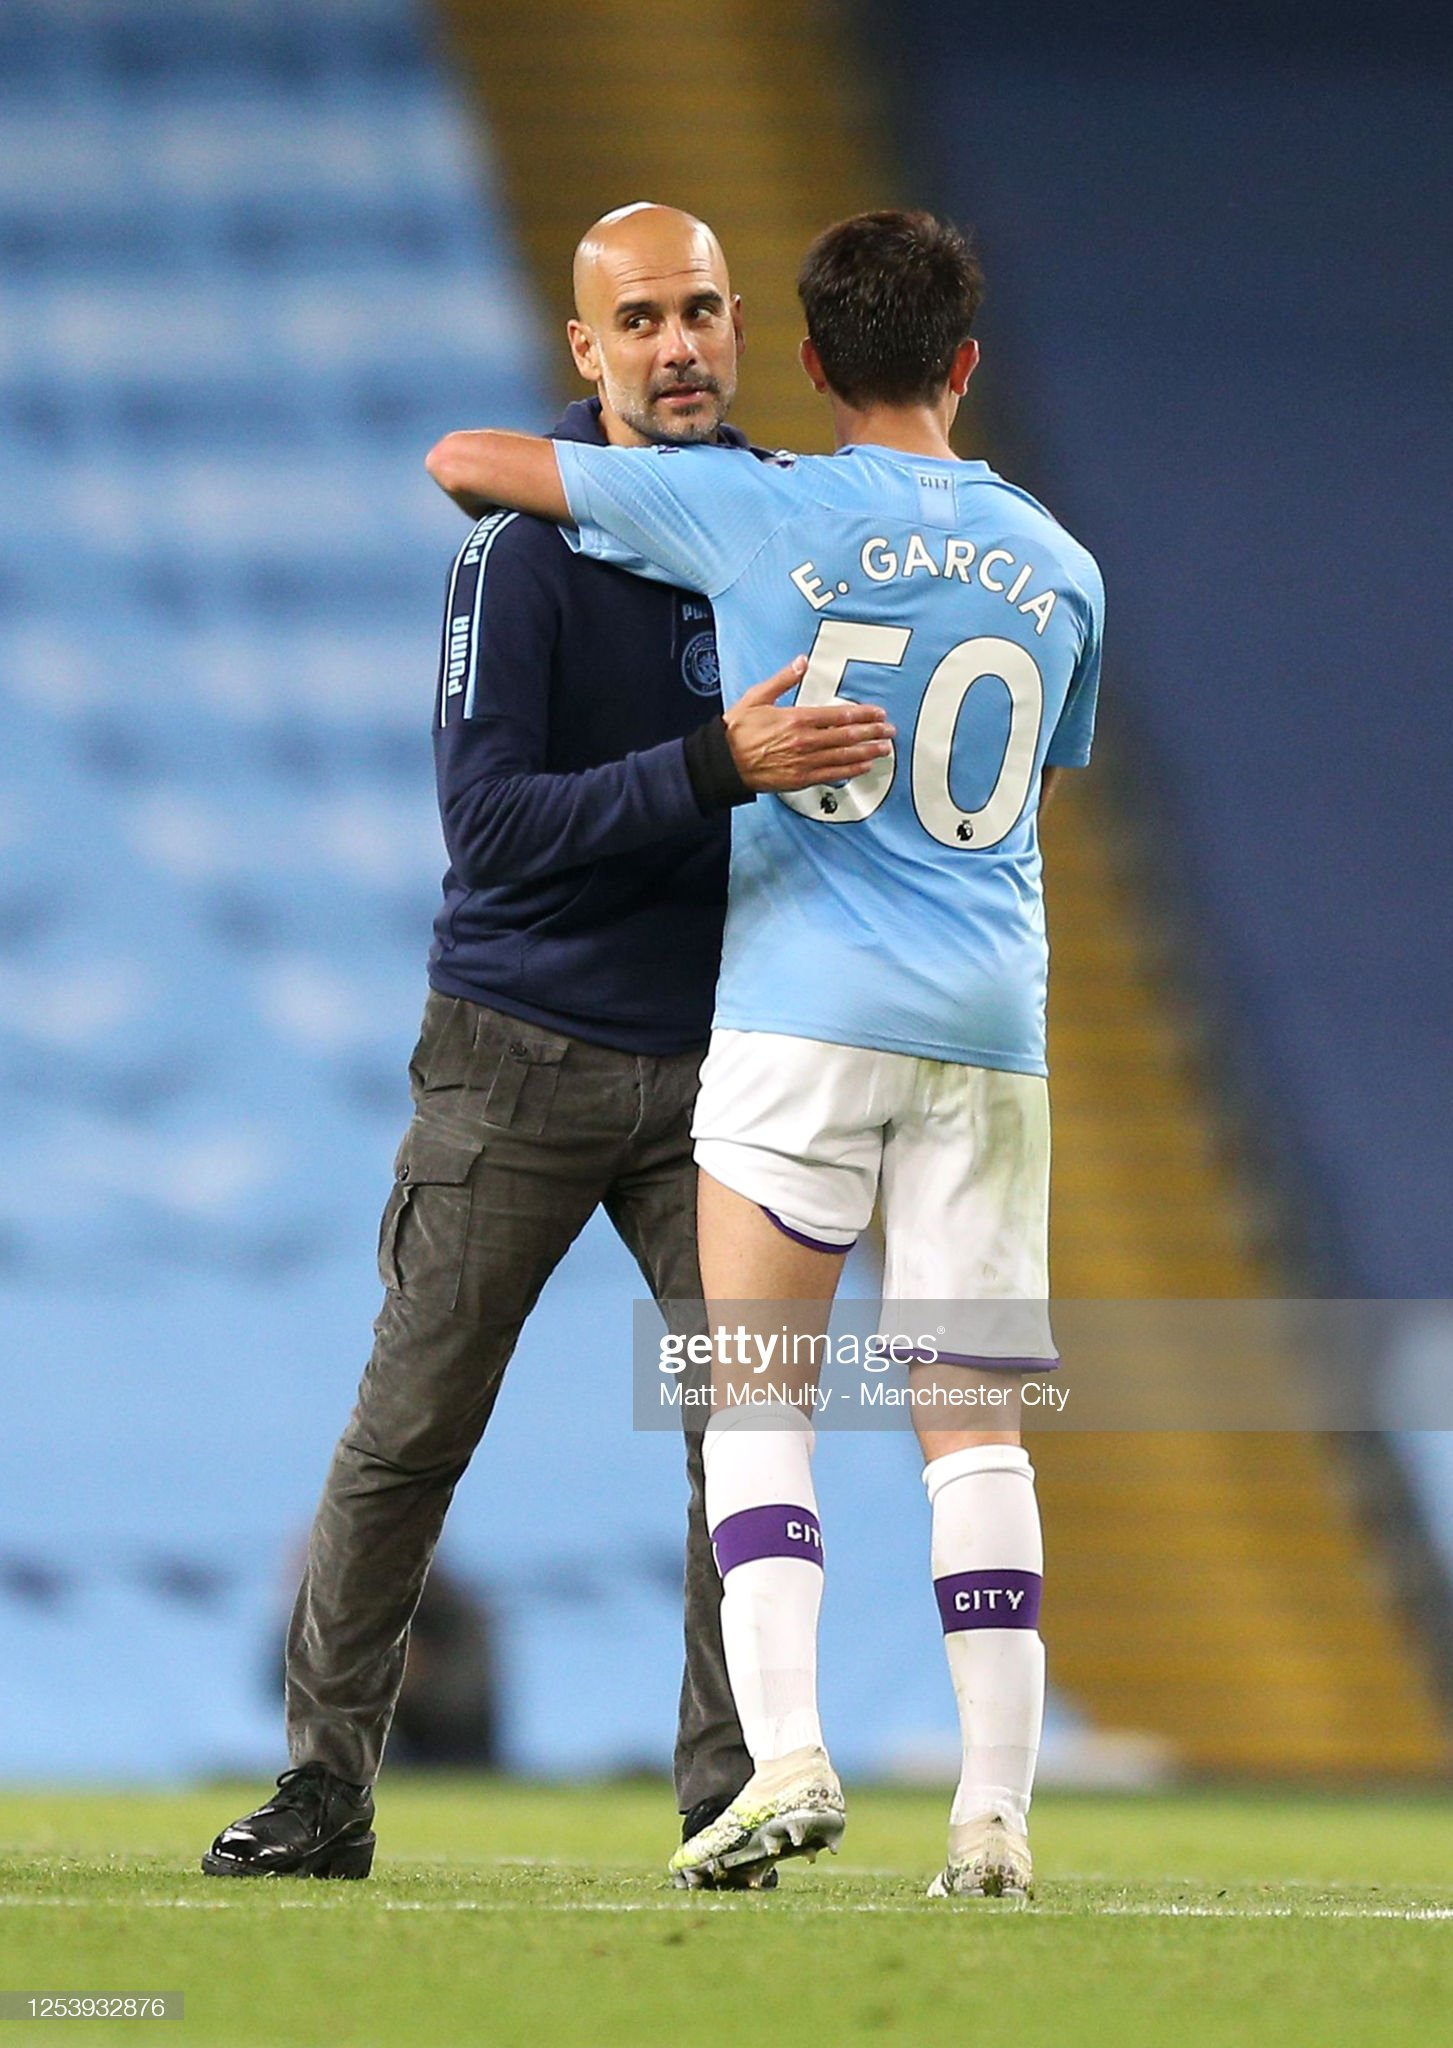 ¿Cuánto mide Eric Garcia? - Altura - Real height Pep-guardiola-manager-of-manchester-city-embraces-eric-garcia-of-picture-id1253932876?s=2048x2048